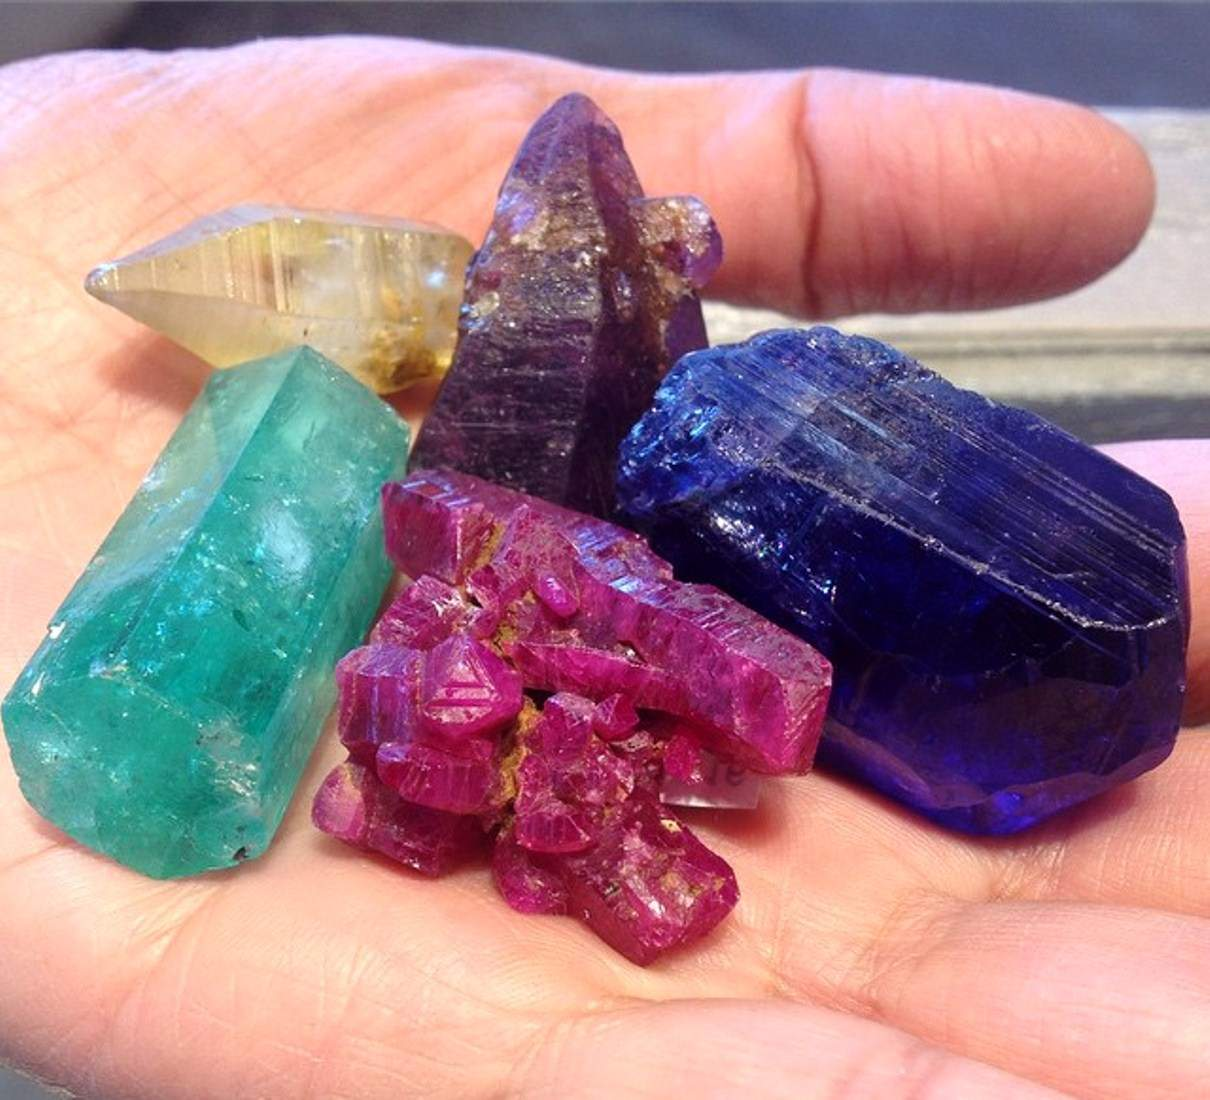 How to Identify Minerals in 10 Steps (Photos)